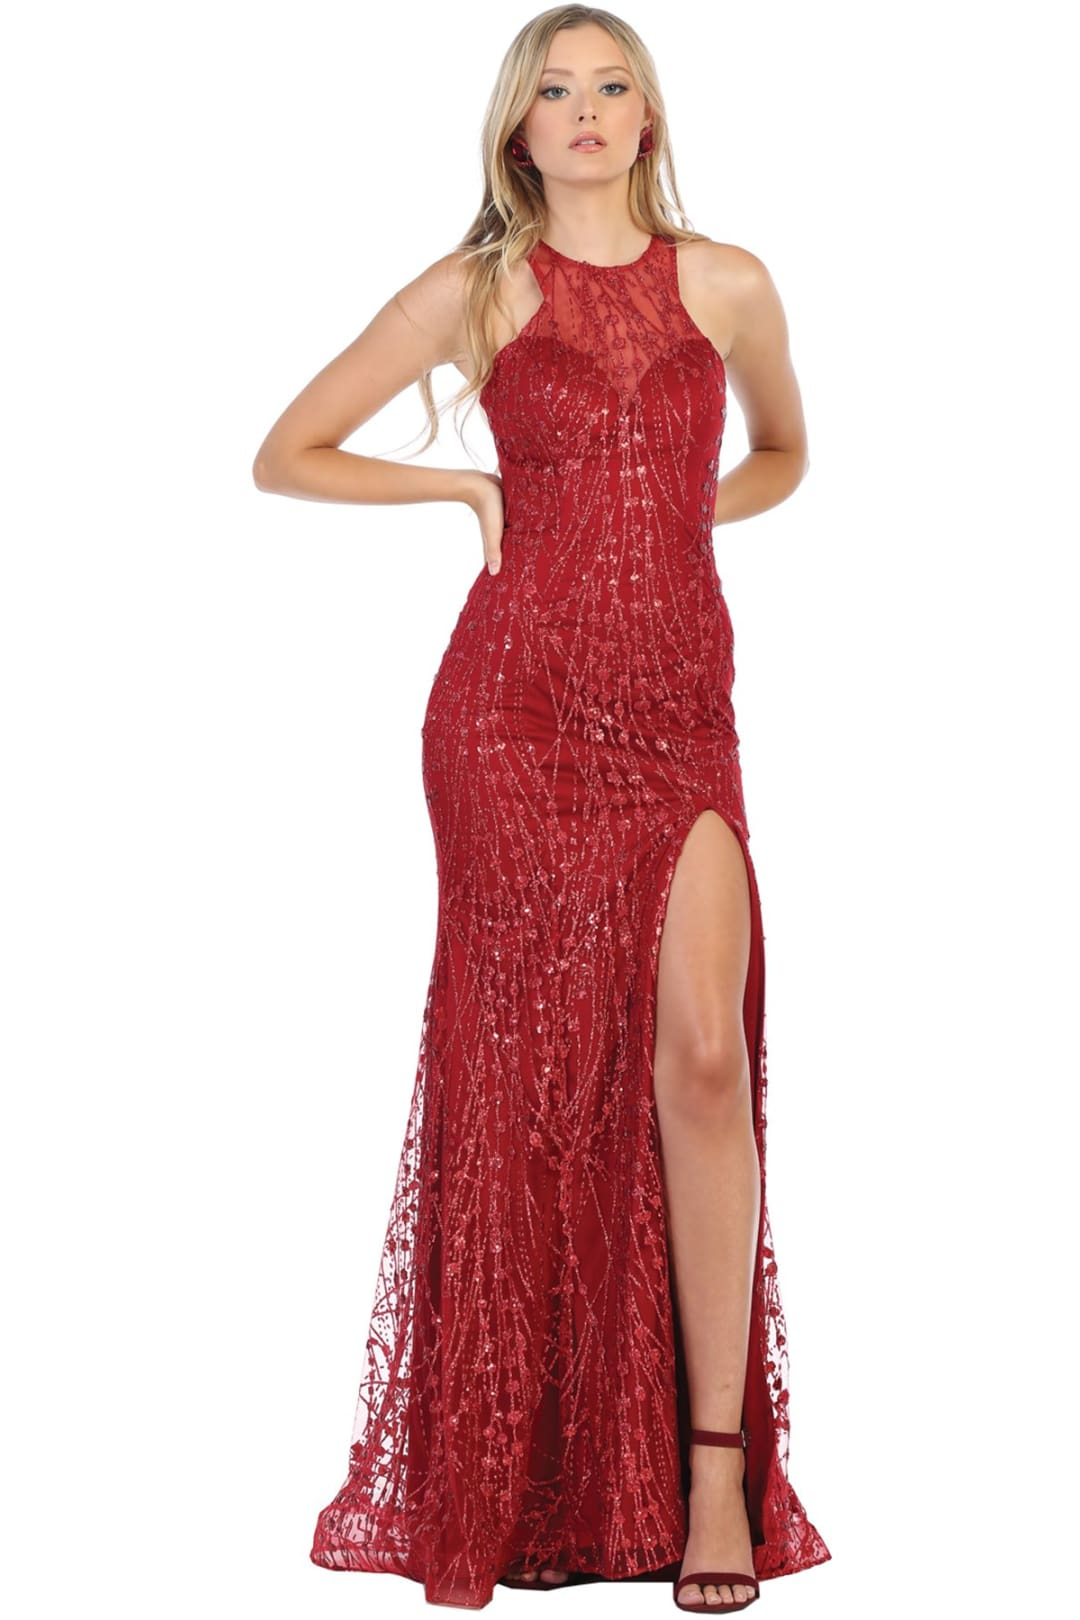 Halter Homecoming Dress - Burgundy / 2